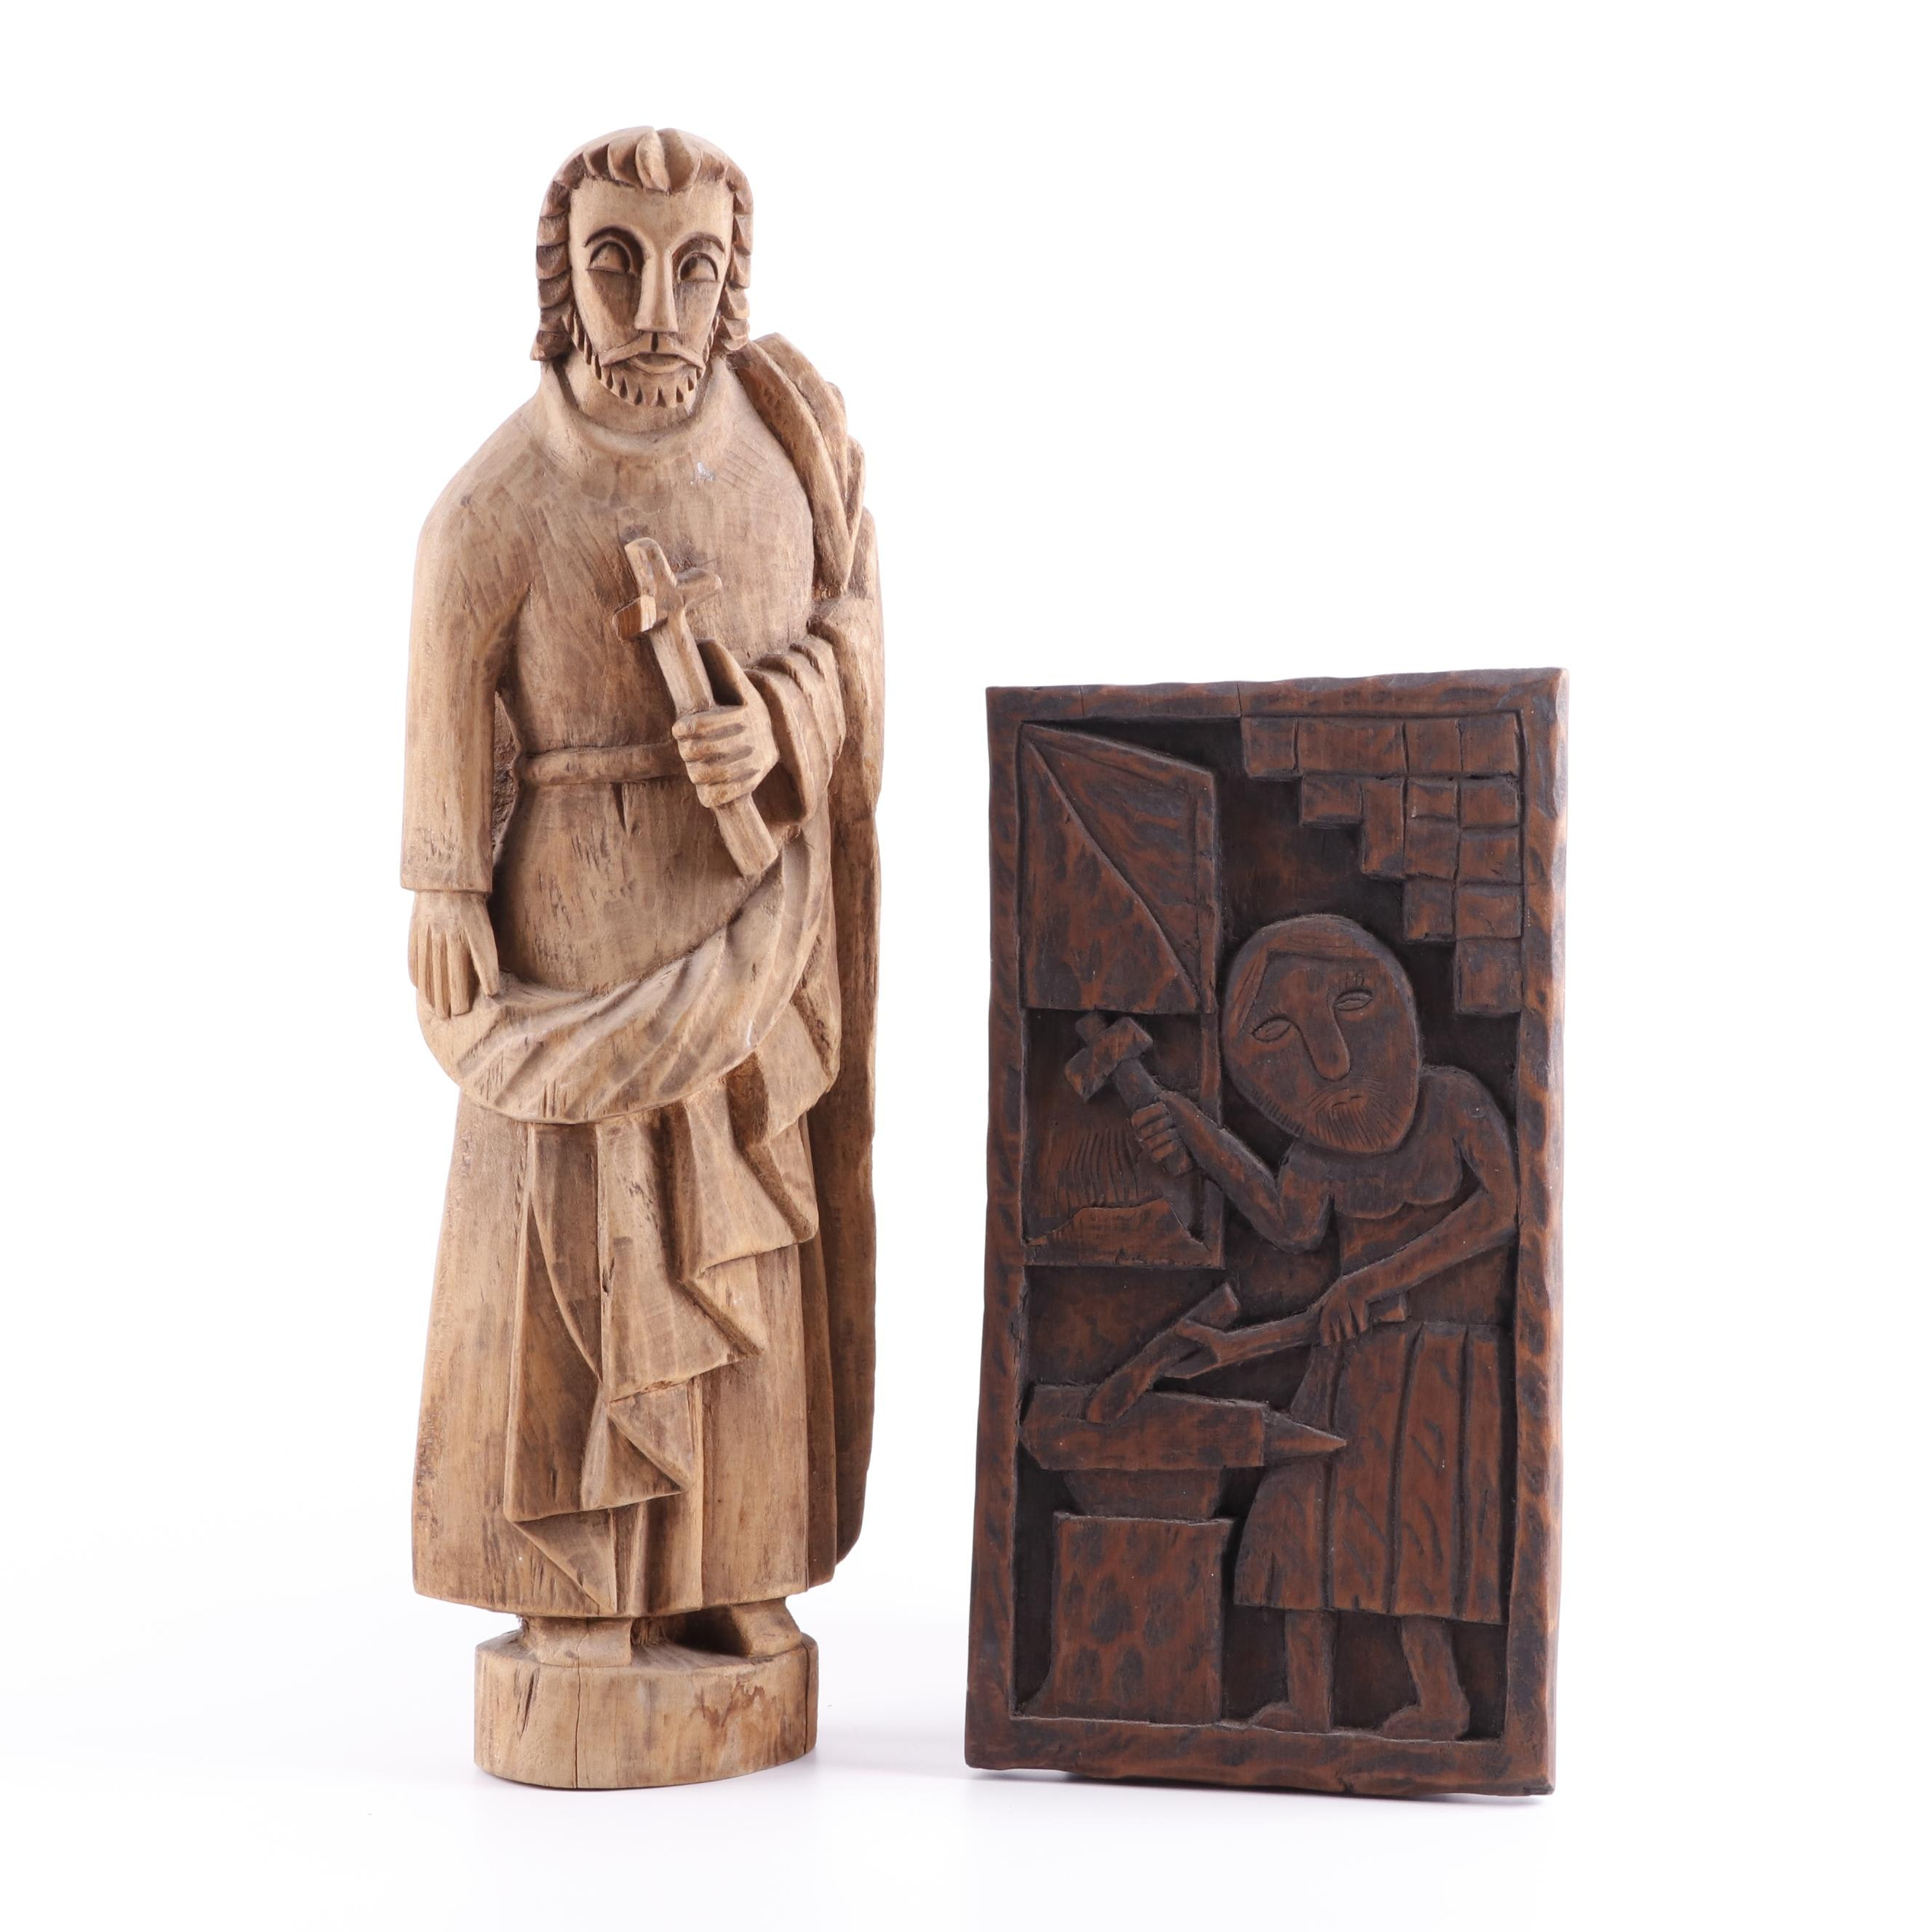 Wood Sculpture of a Male Saint and Carved Wood Plaque of Blacksmith